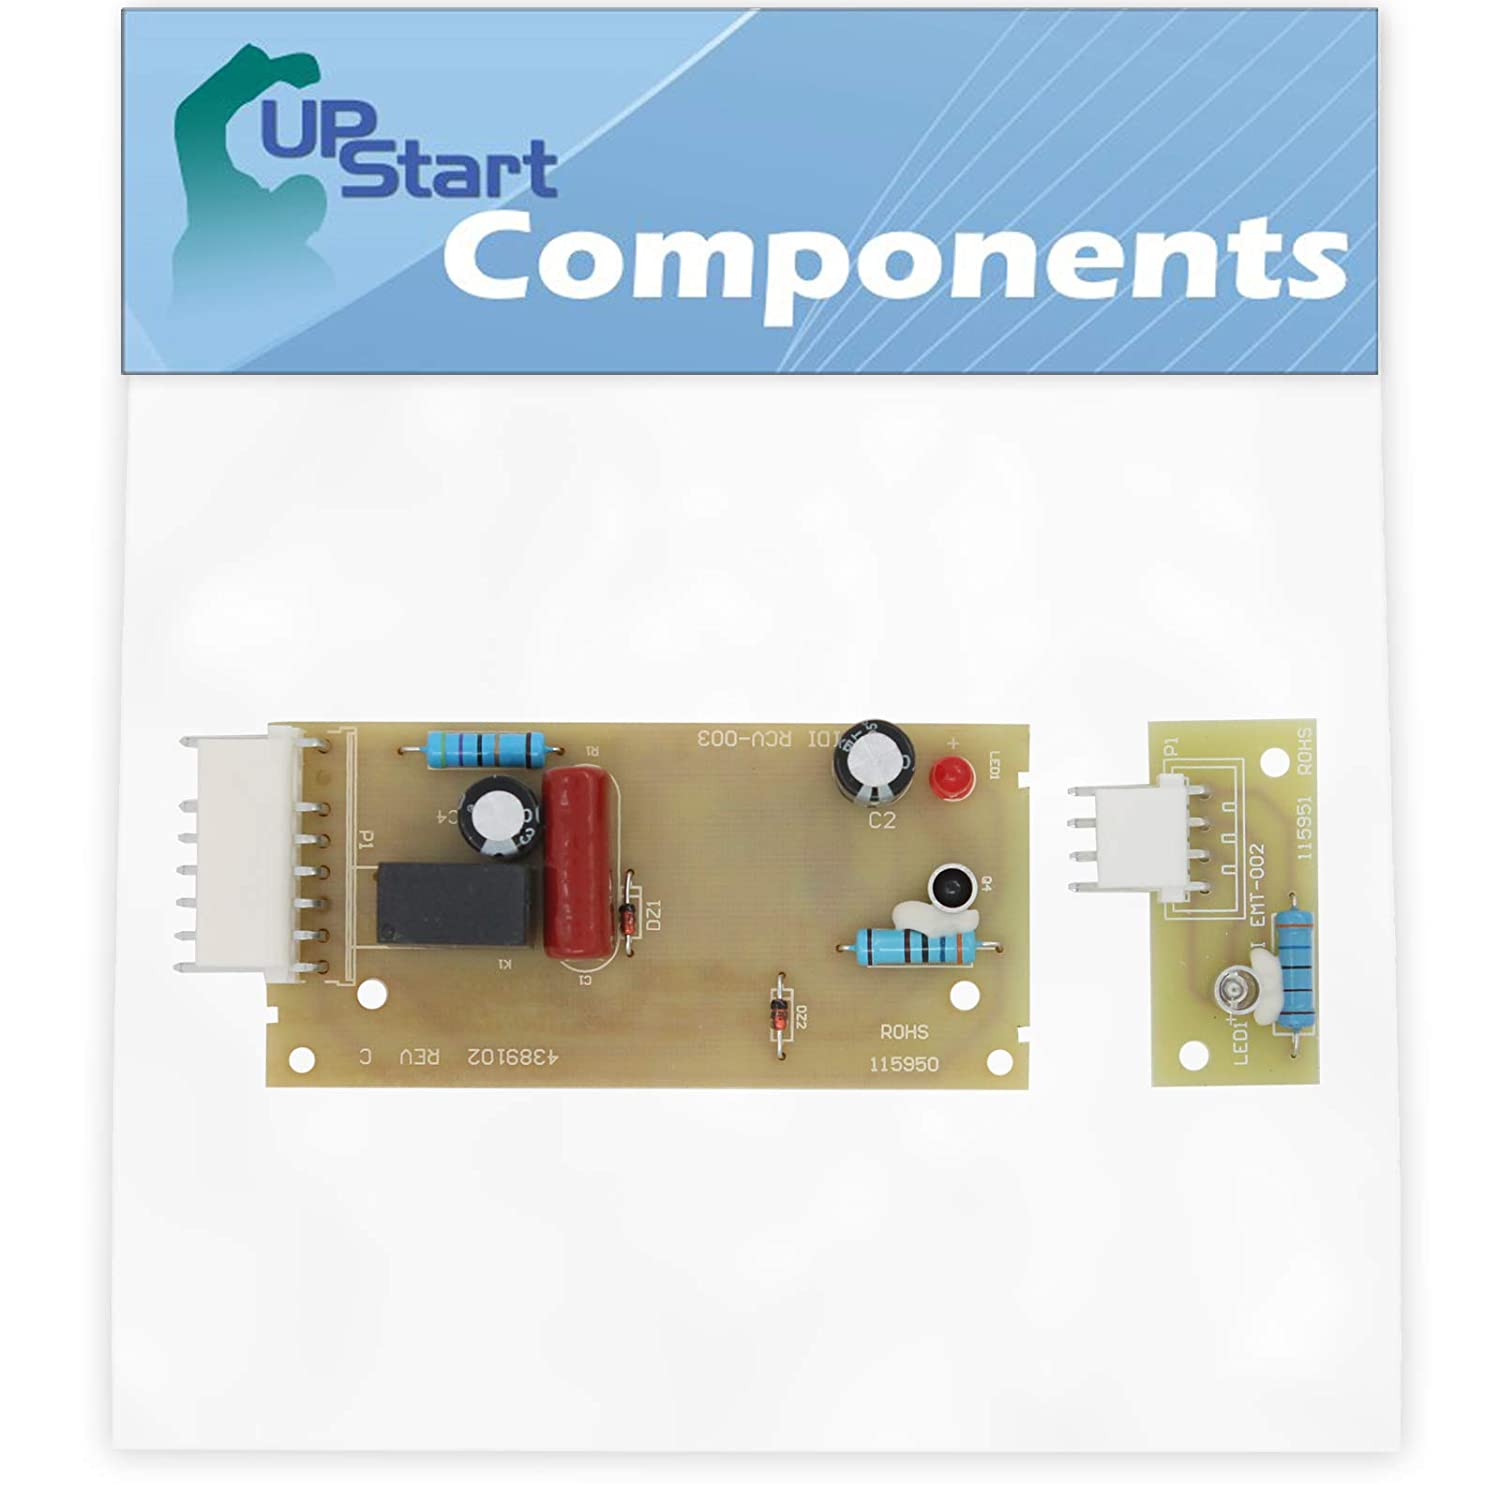 W10757851 Refrigerator Ice Level Control Board Replacement for KitchenAid KSSC42QMS02 Refrigerator - Compatible with 4389102 Icemaker Emitter Sensor Control Board - UpStart Components Brand